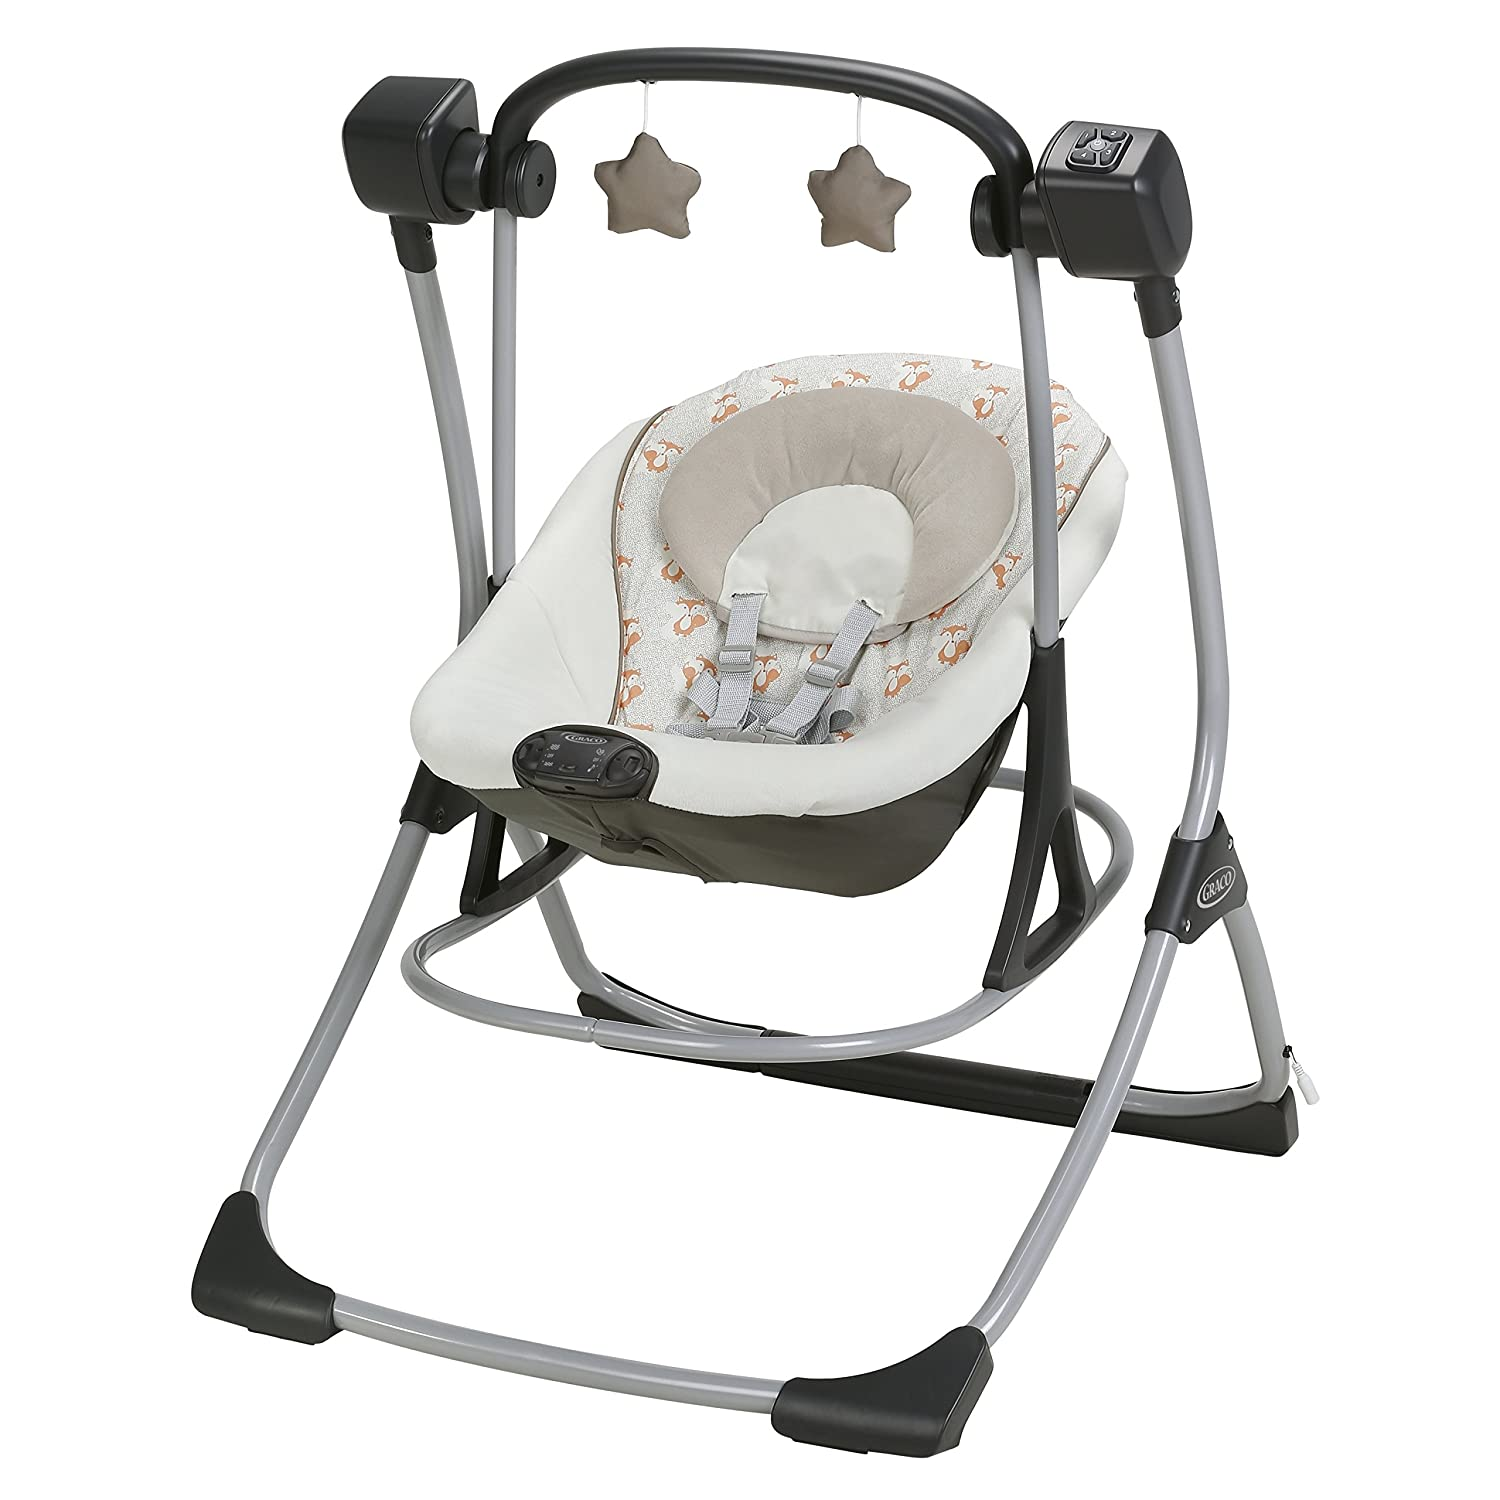 Graco Cozy Duet Swing, Leo Graco Baby 2048754